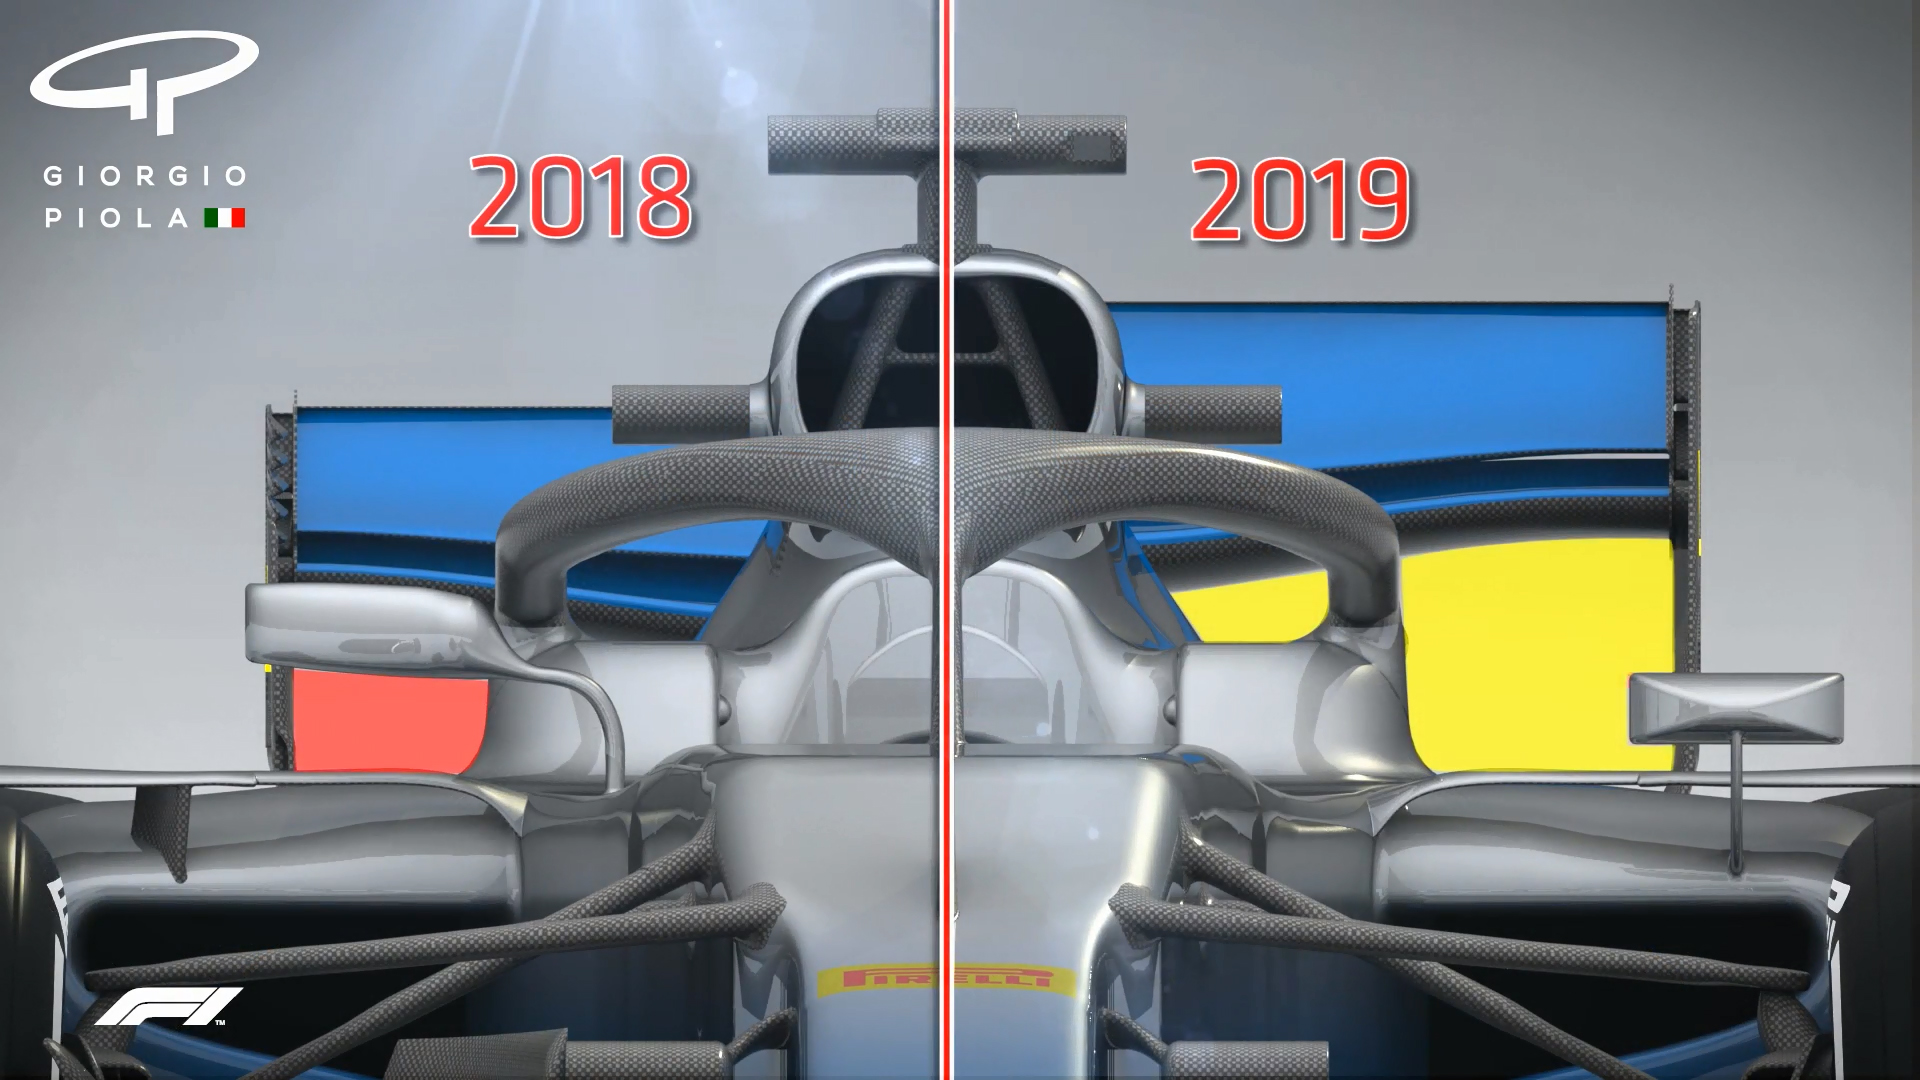 F1: F1 RULES & REGULATIONS: What's New For 2019?